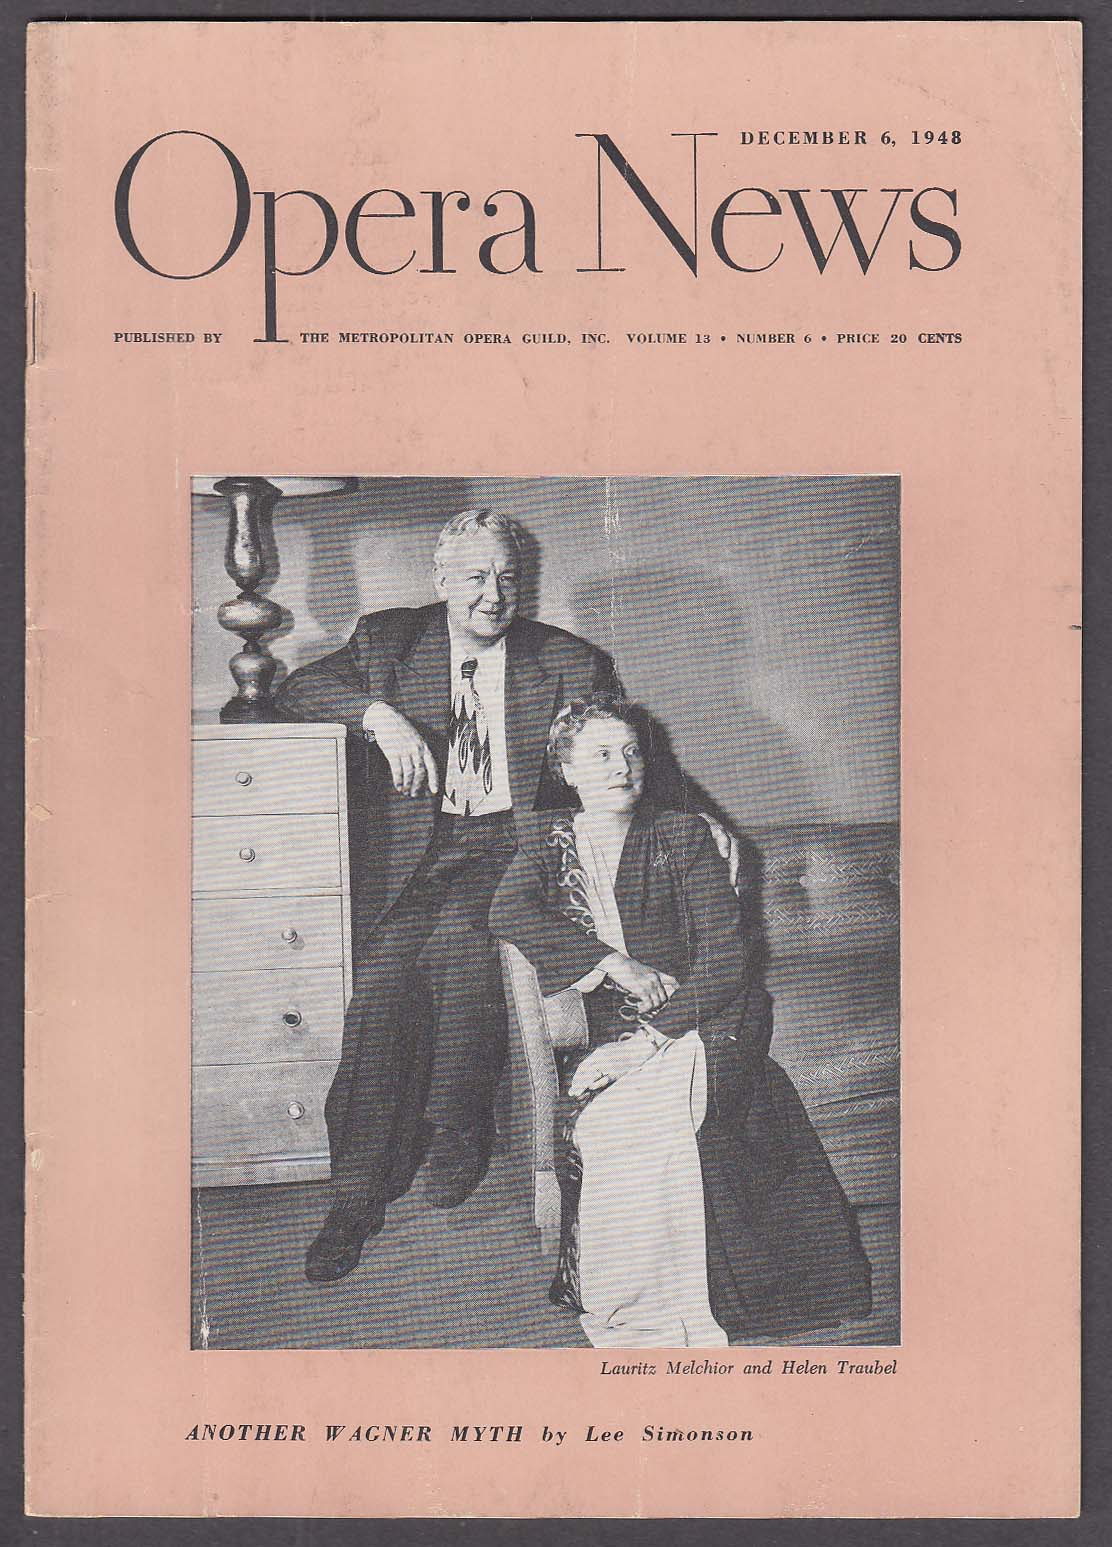 Image for OPERA NEWS Melchior Traubel 12/6 1948